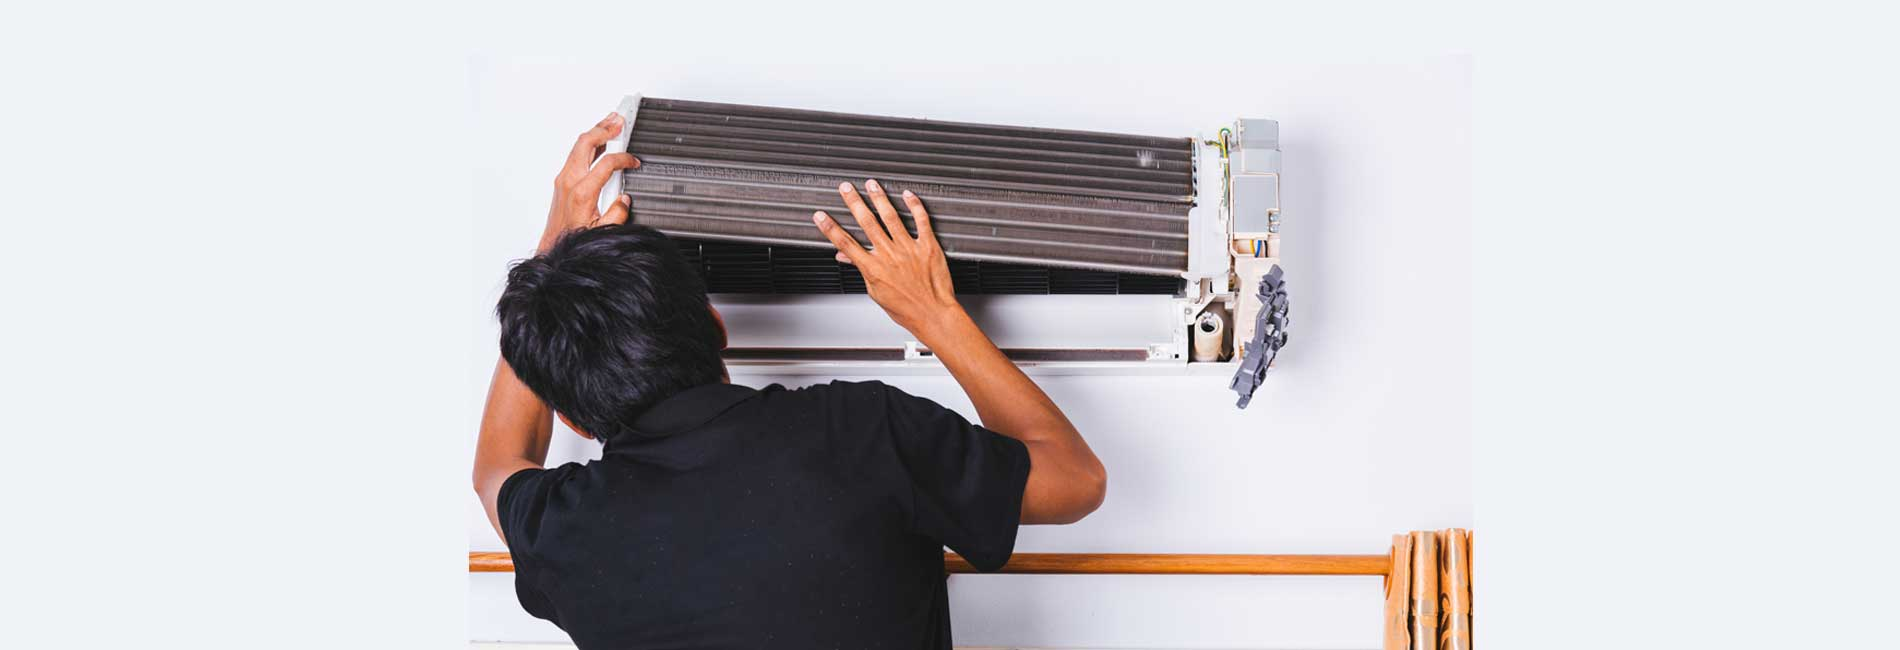 Whirlpool AC Uninstallation and Installation in Anna Nagar West Extension